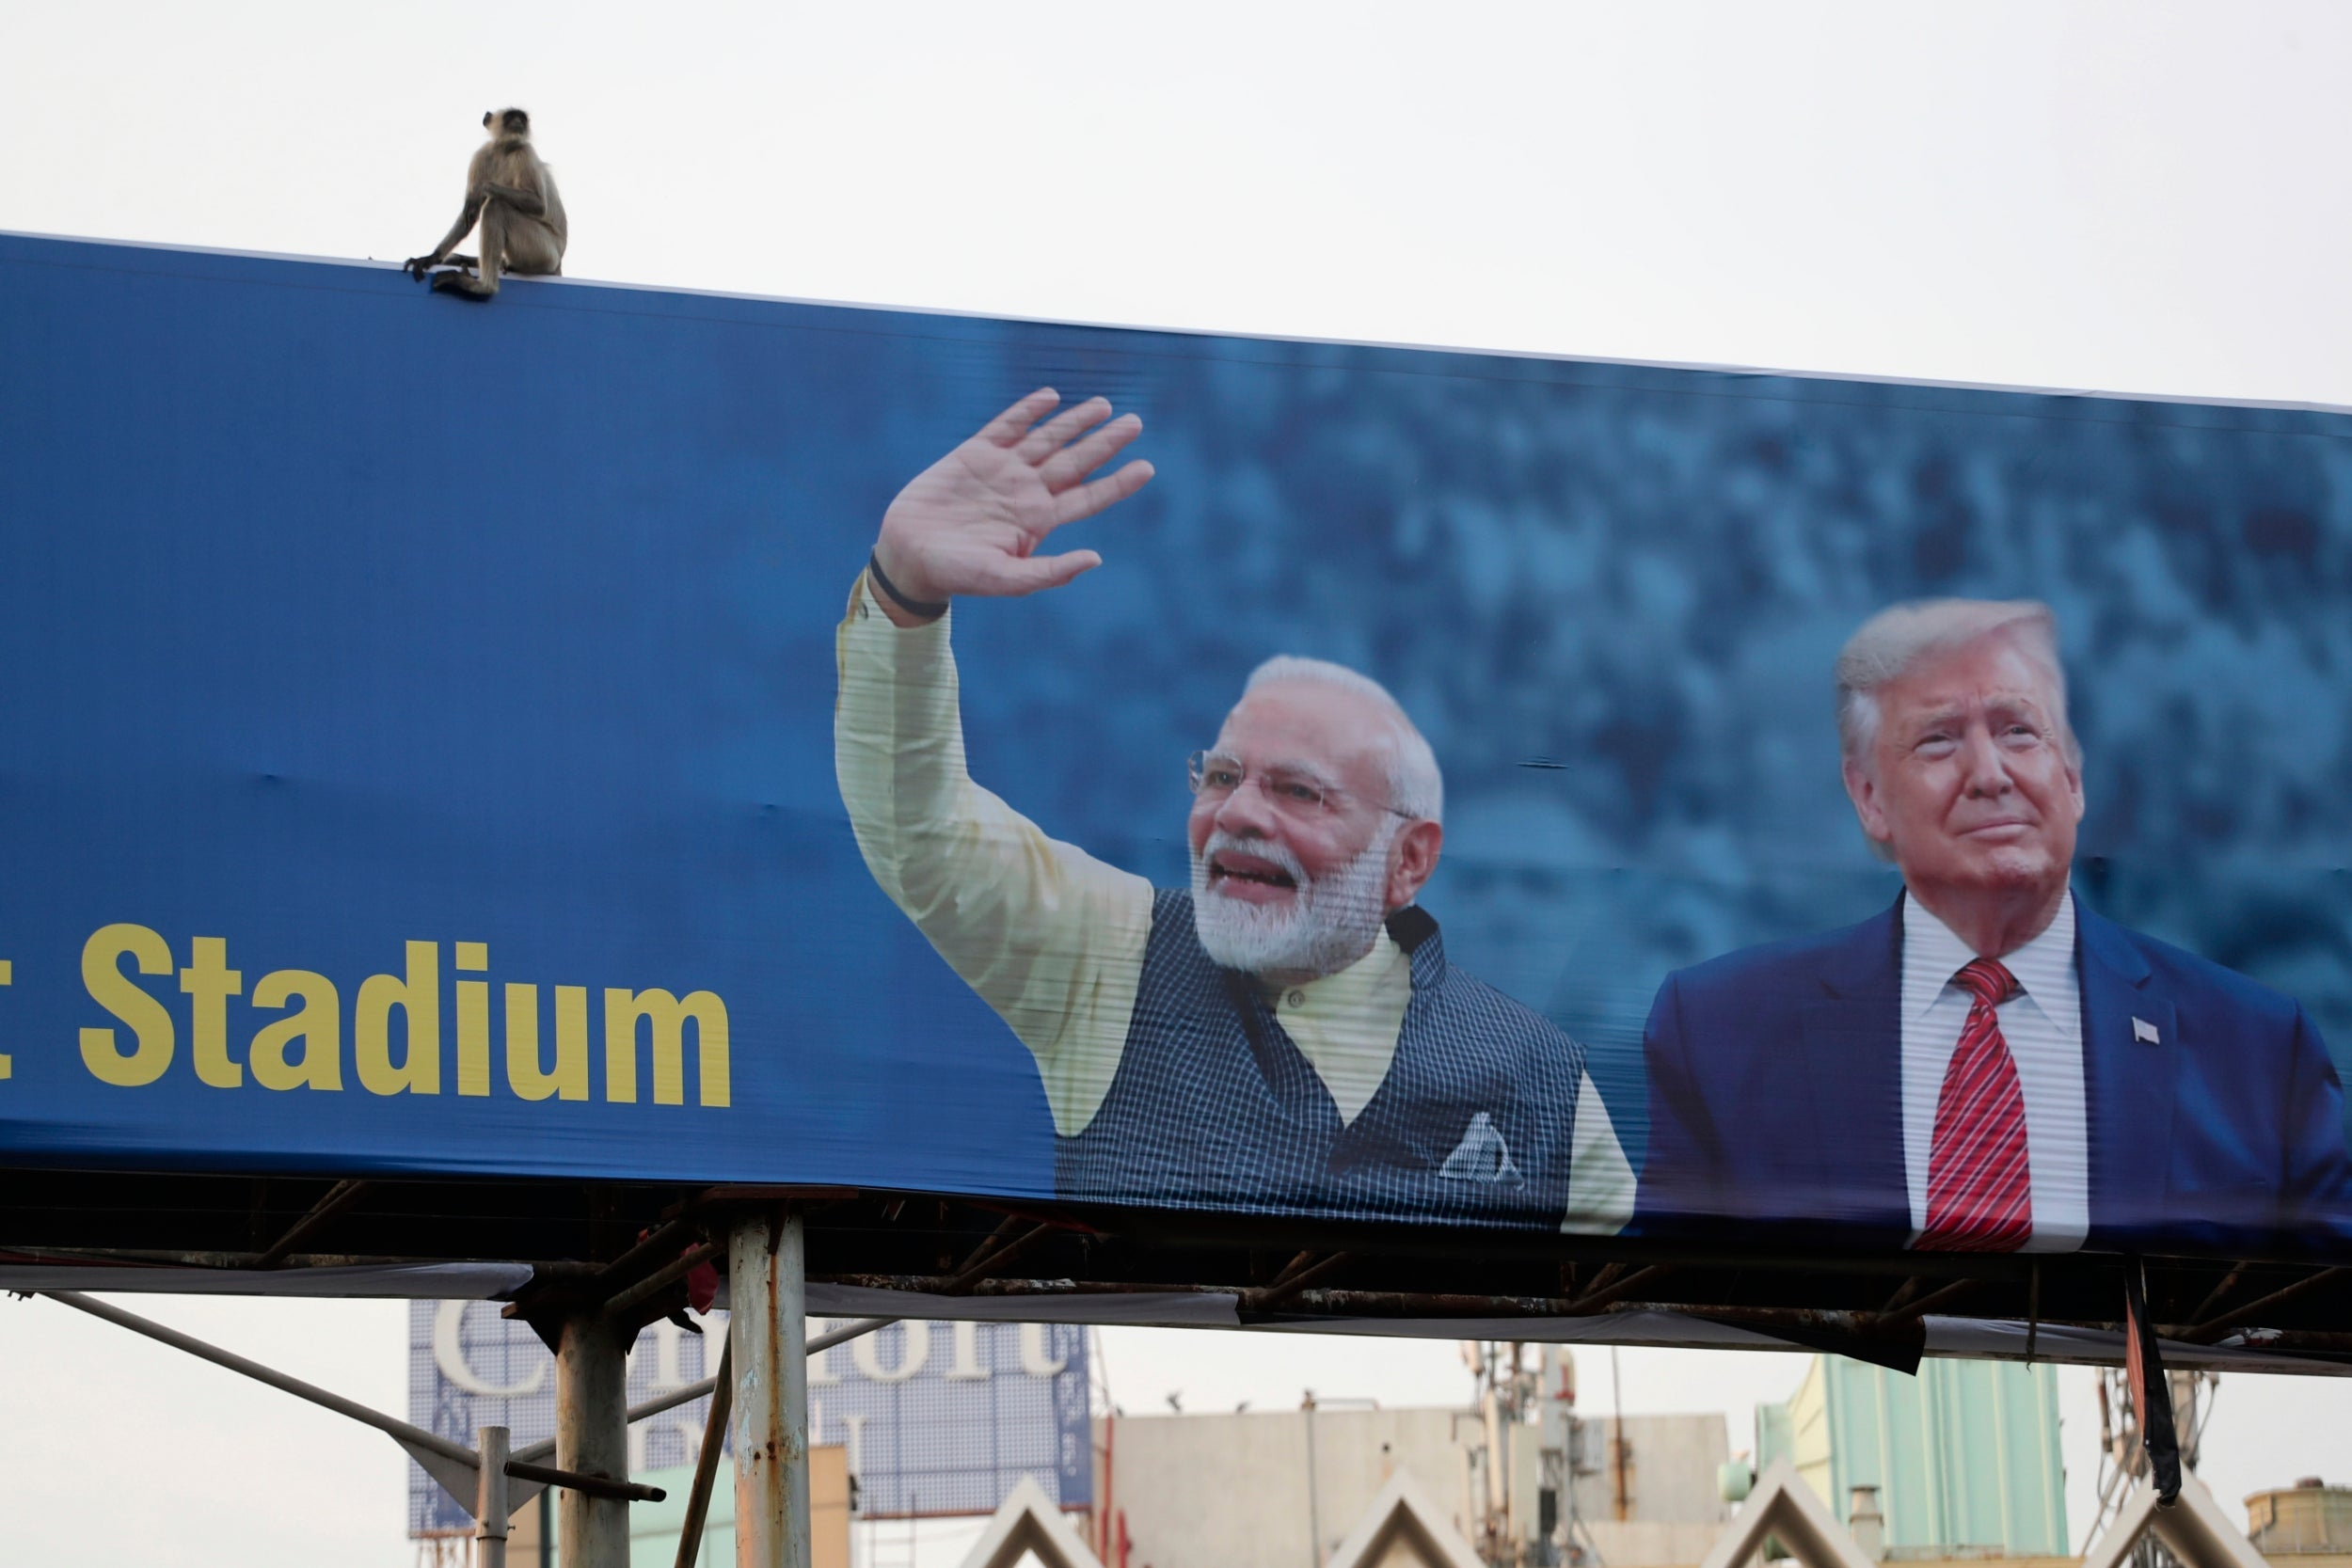 Trump heads to India eyeing trade deal as re-election trophy - independent